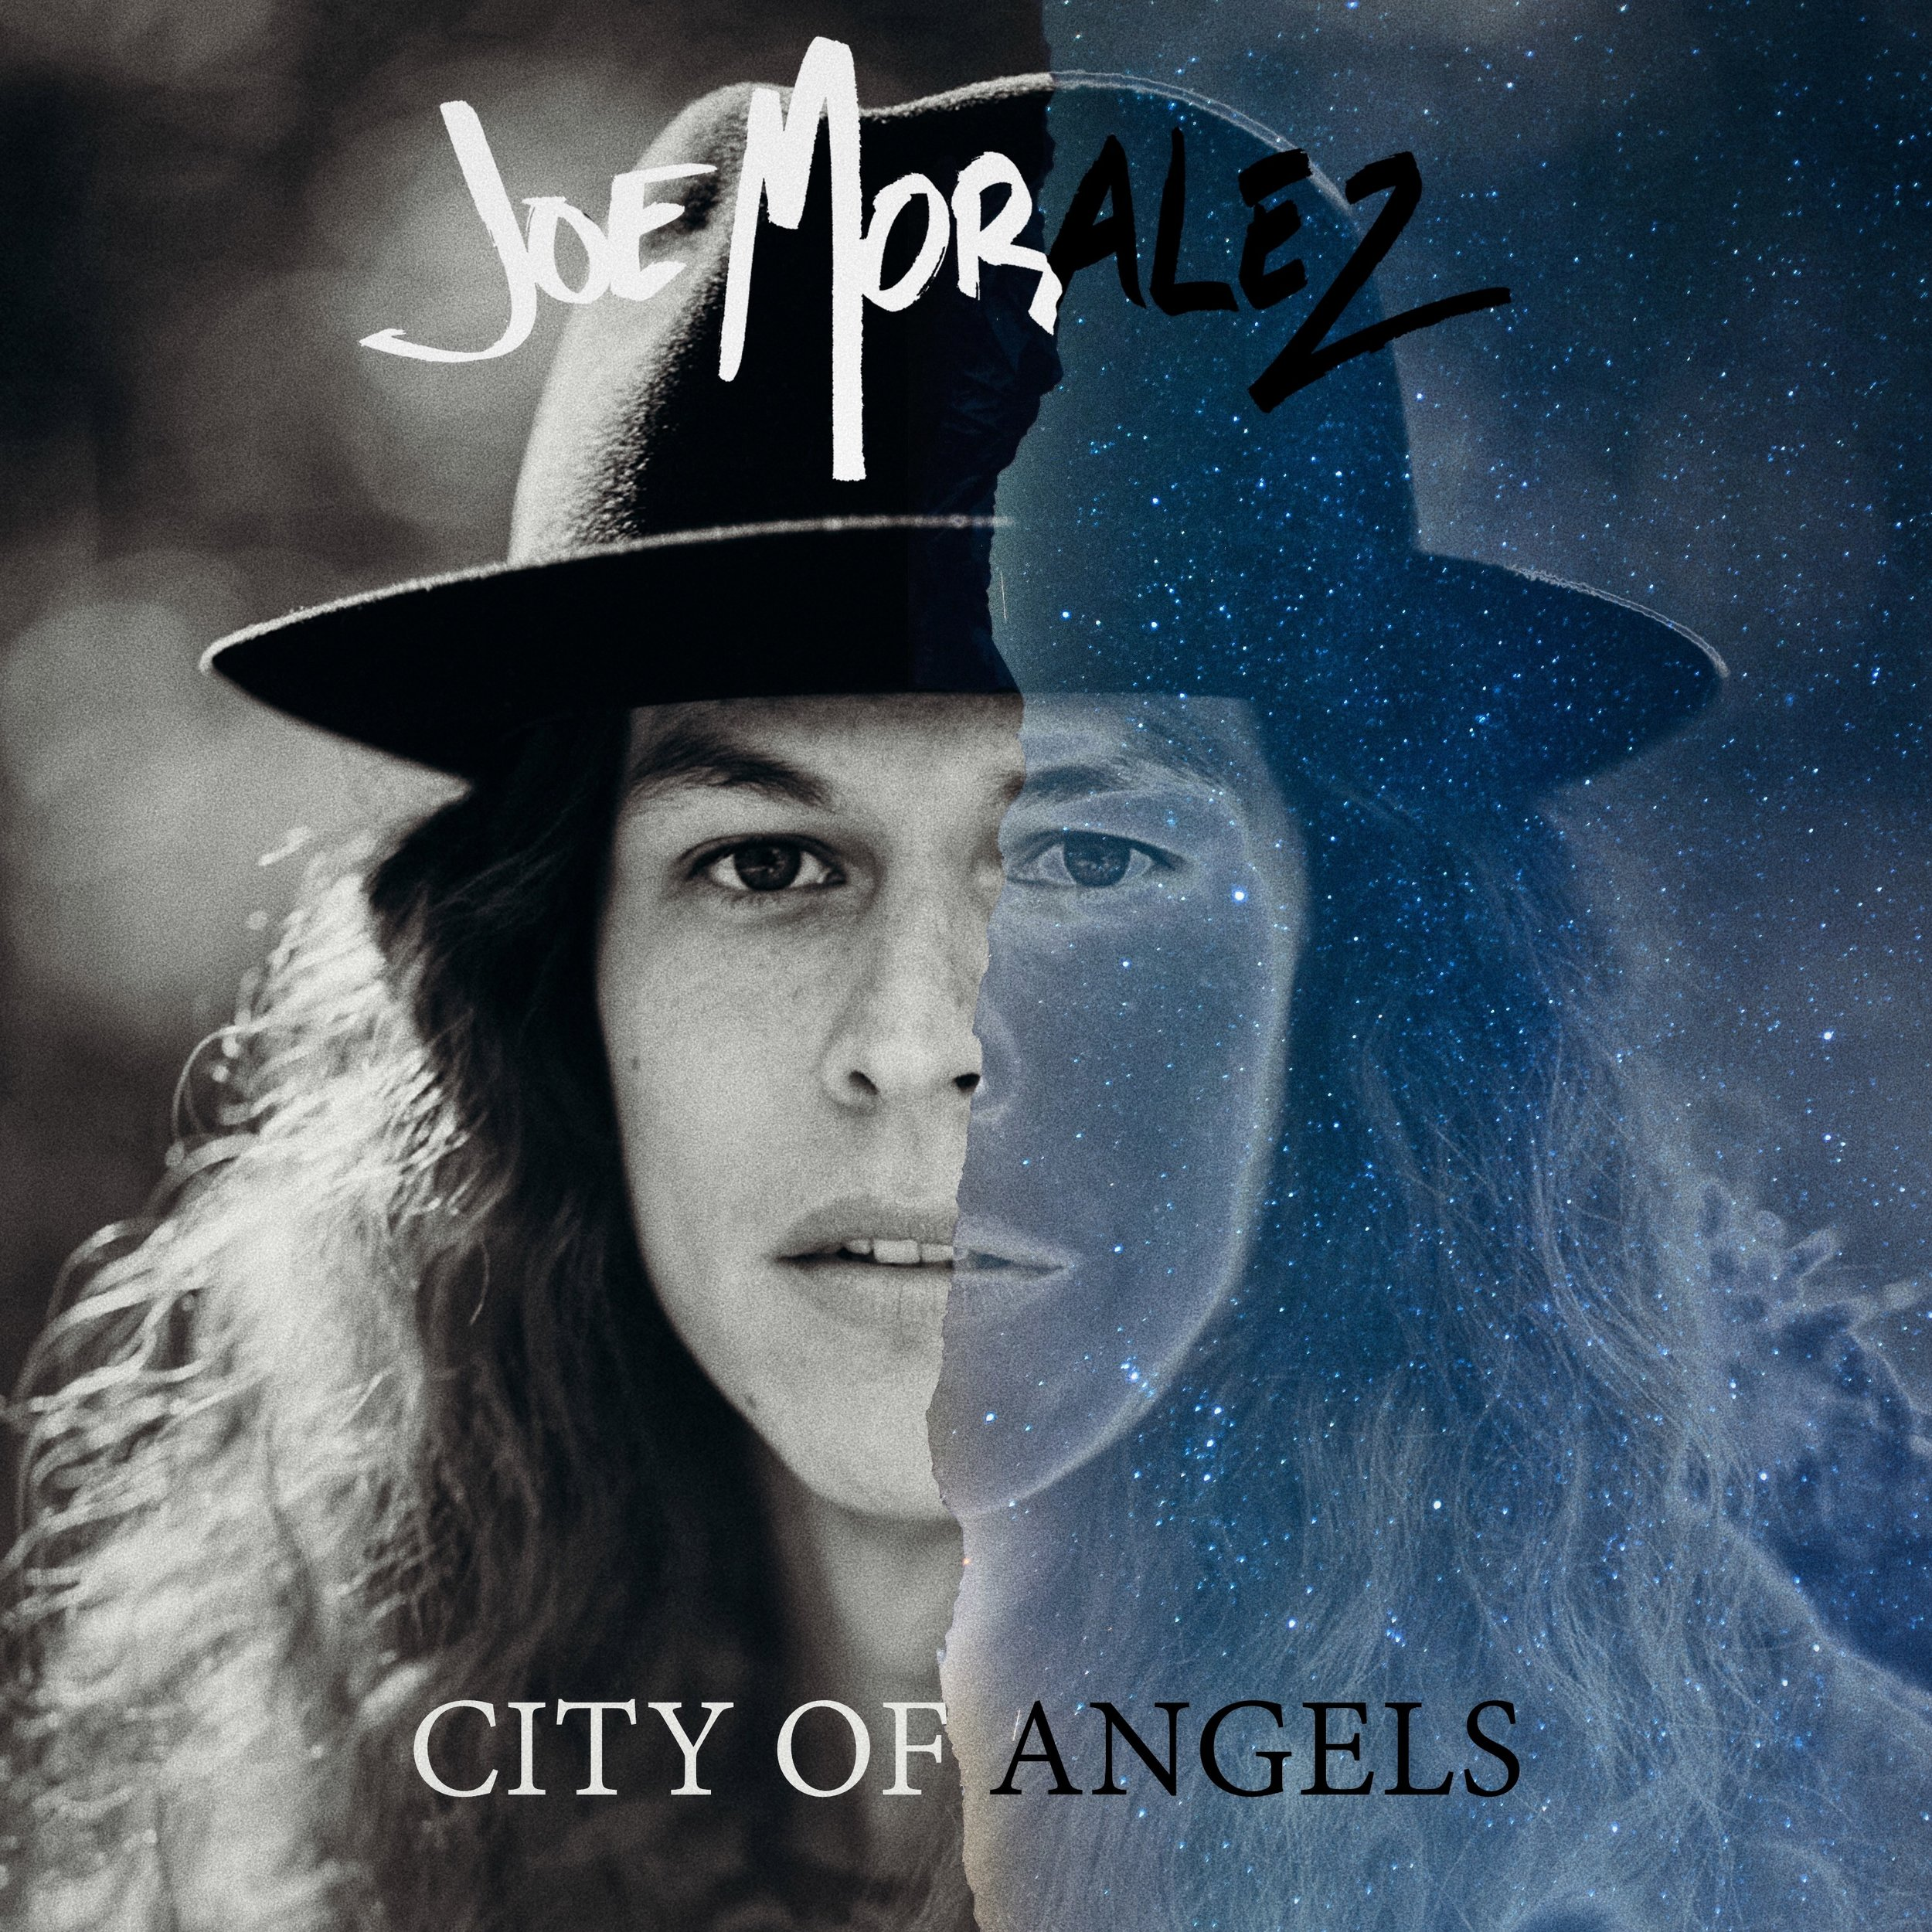 Joe-Moralez-City-of-Angels-Single.jpeg